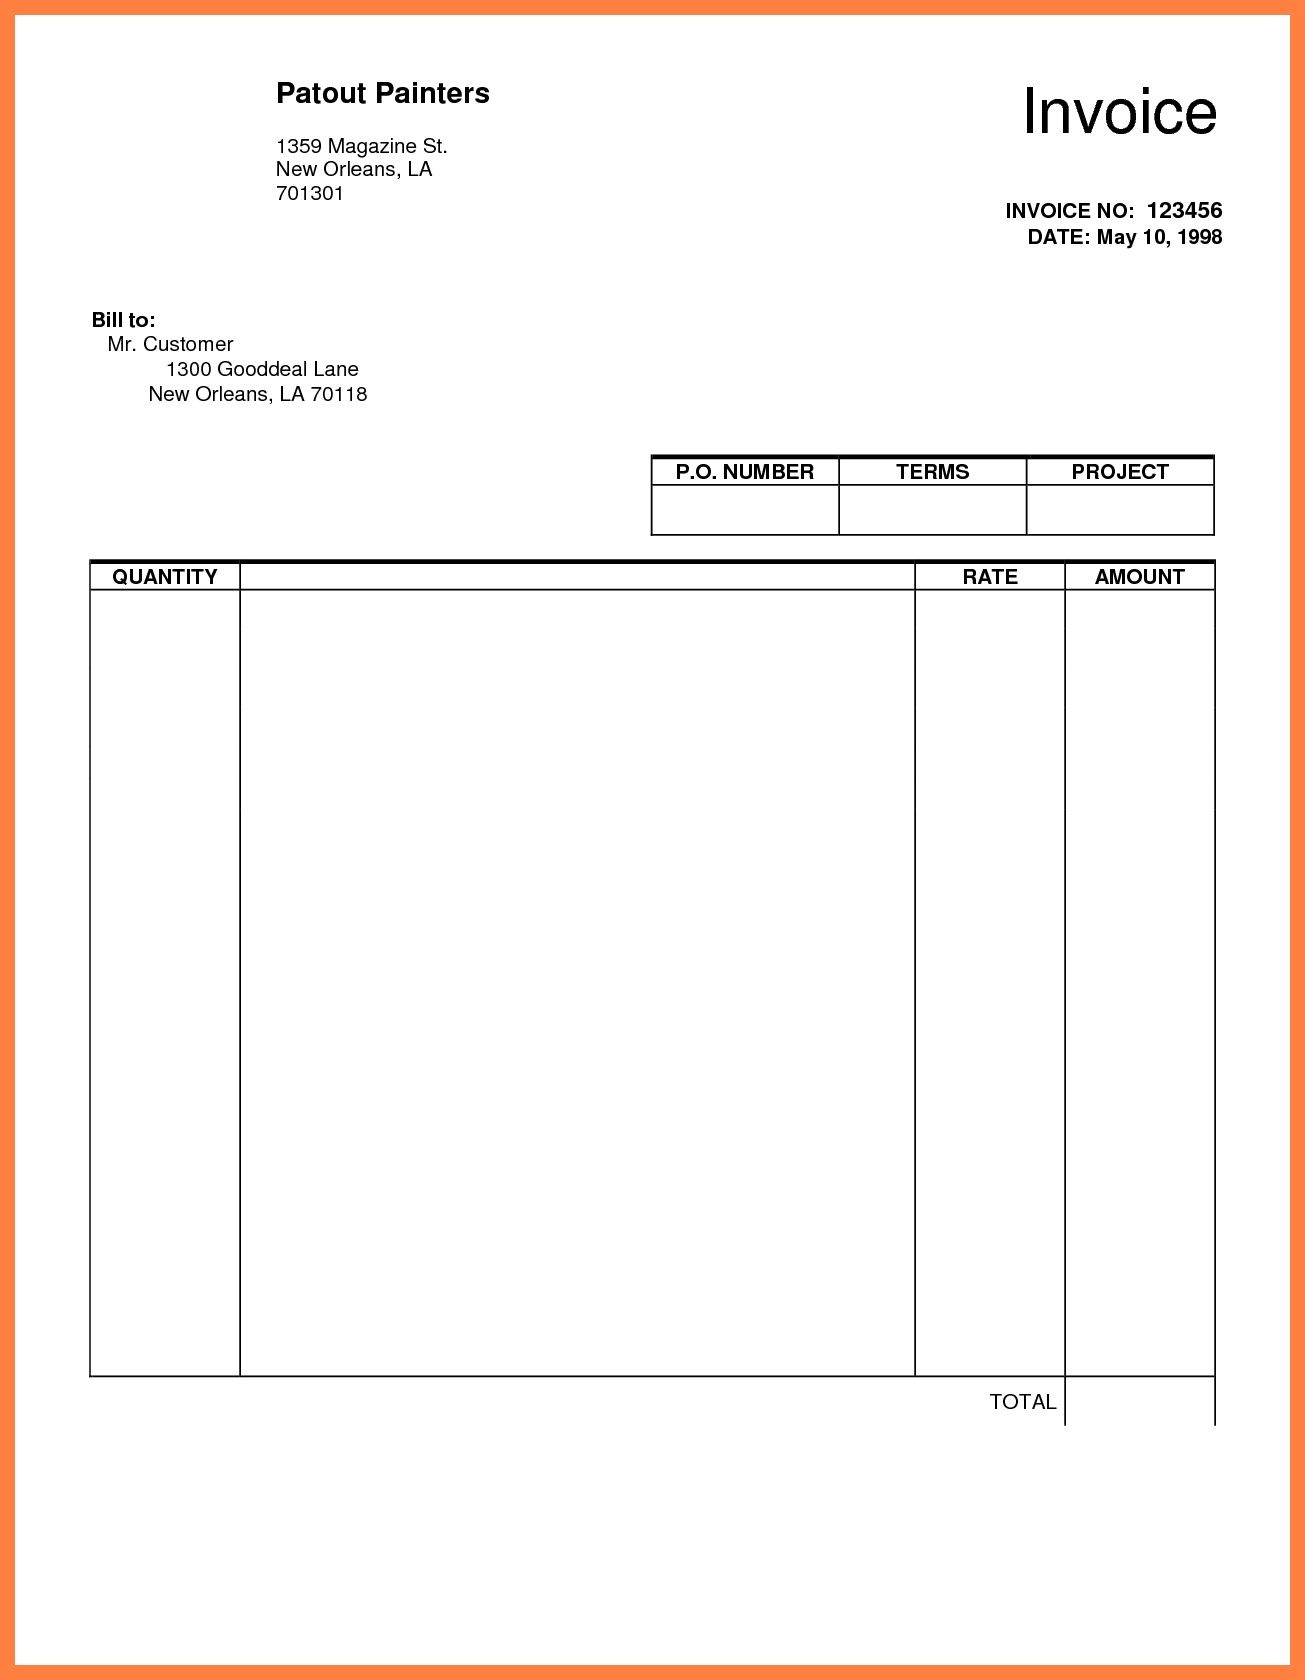 Google docs template templates word google docs templates resume google docs template templates word google docs templates resume make an invoice in google docs maxwellsz